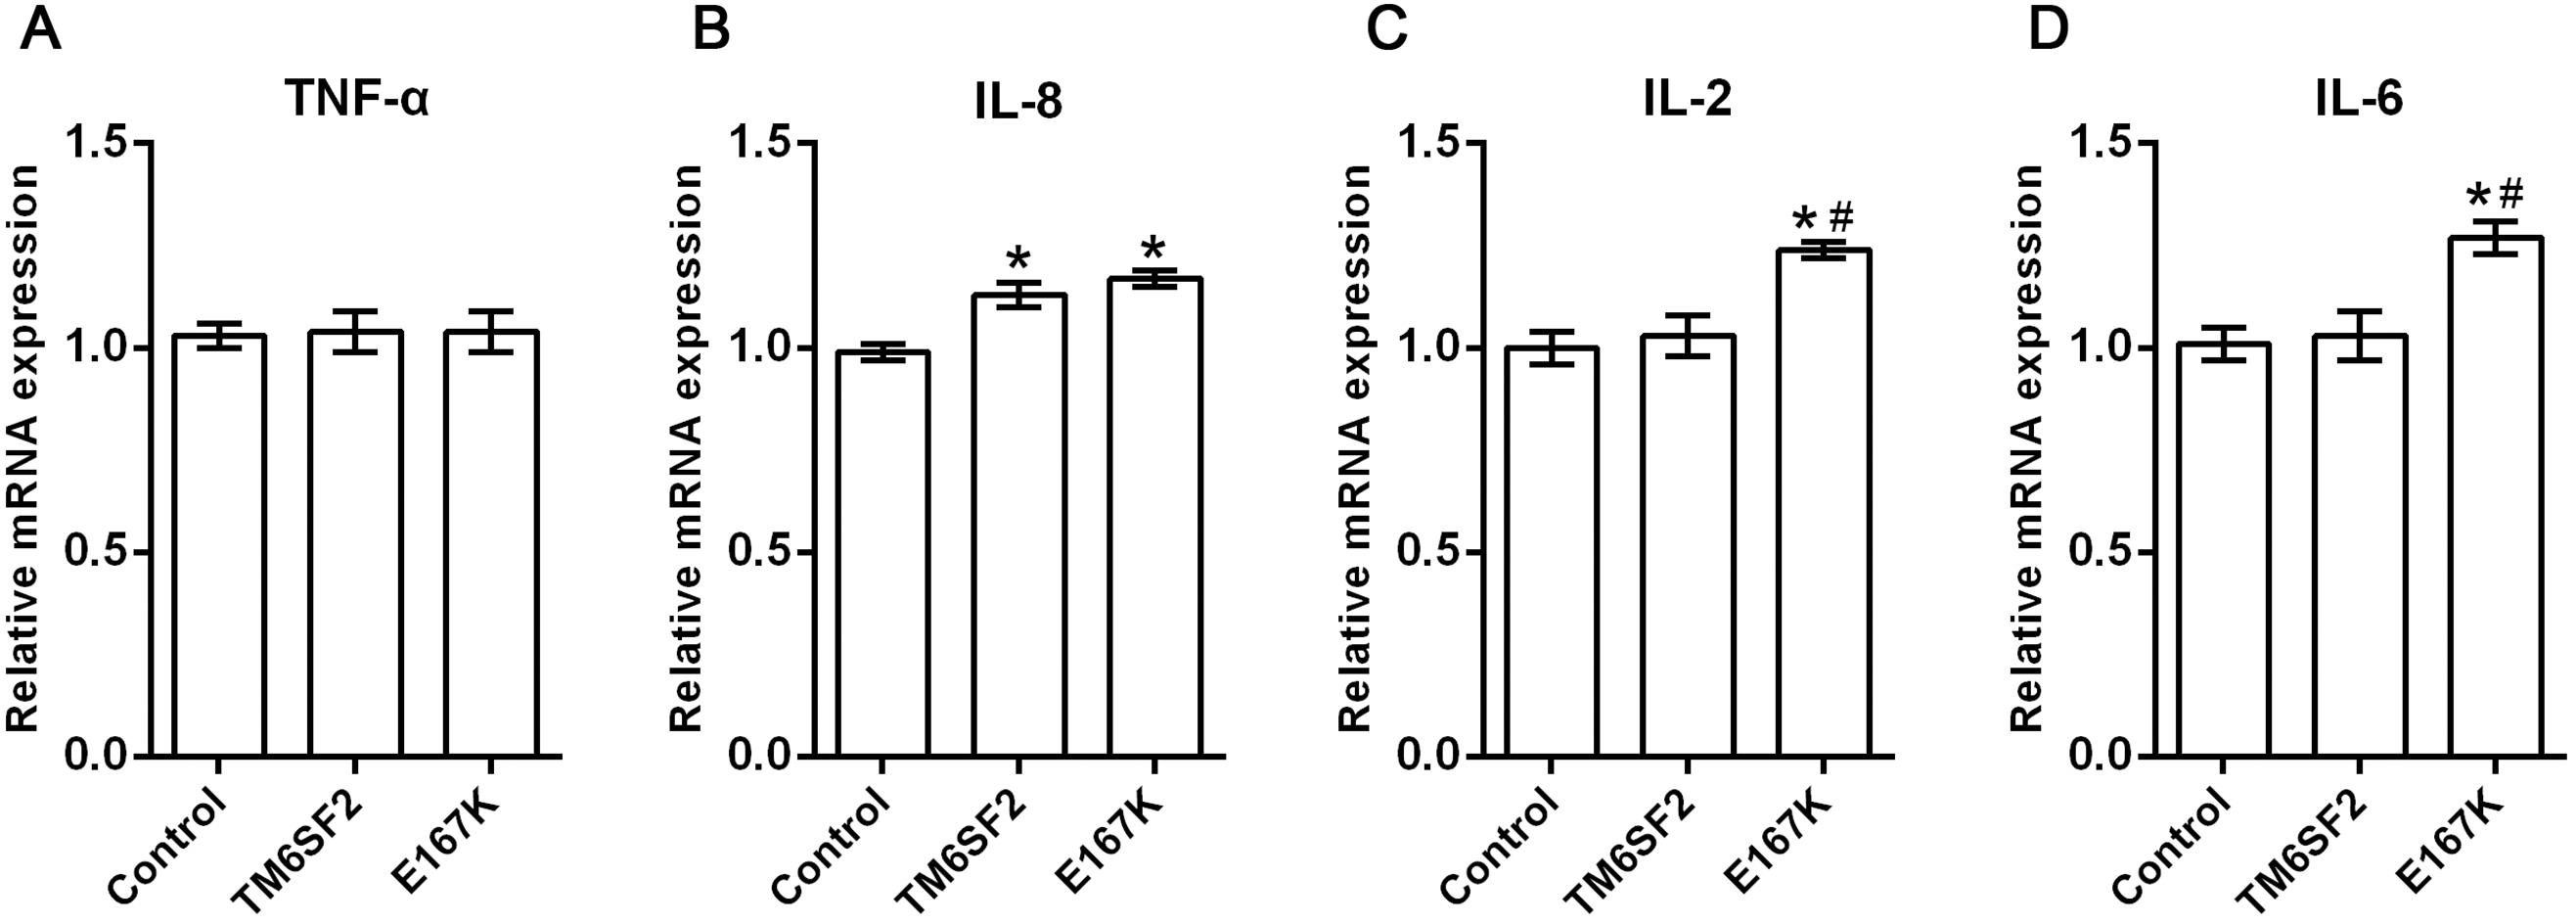 Relative expression levels of TNF-α, IL-2, IL-6 and IL-8 in HEPA 1-6 cells for the TM6SF2 overexpressed group, TM6SF2 E167K overexpressed group, and negative control group.